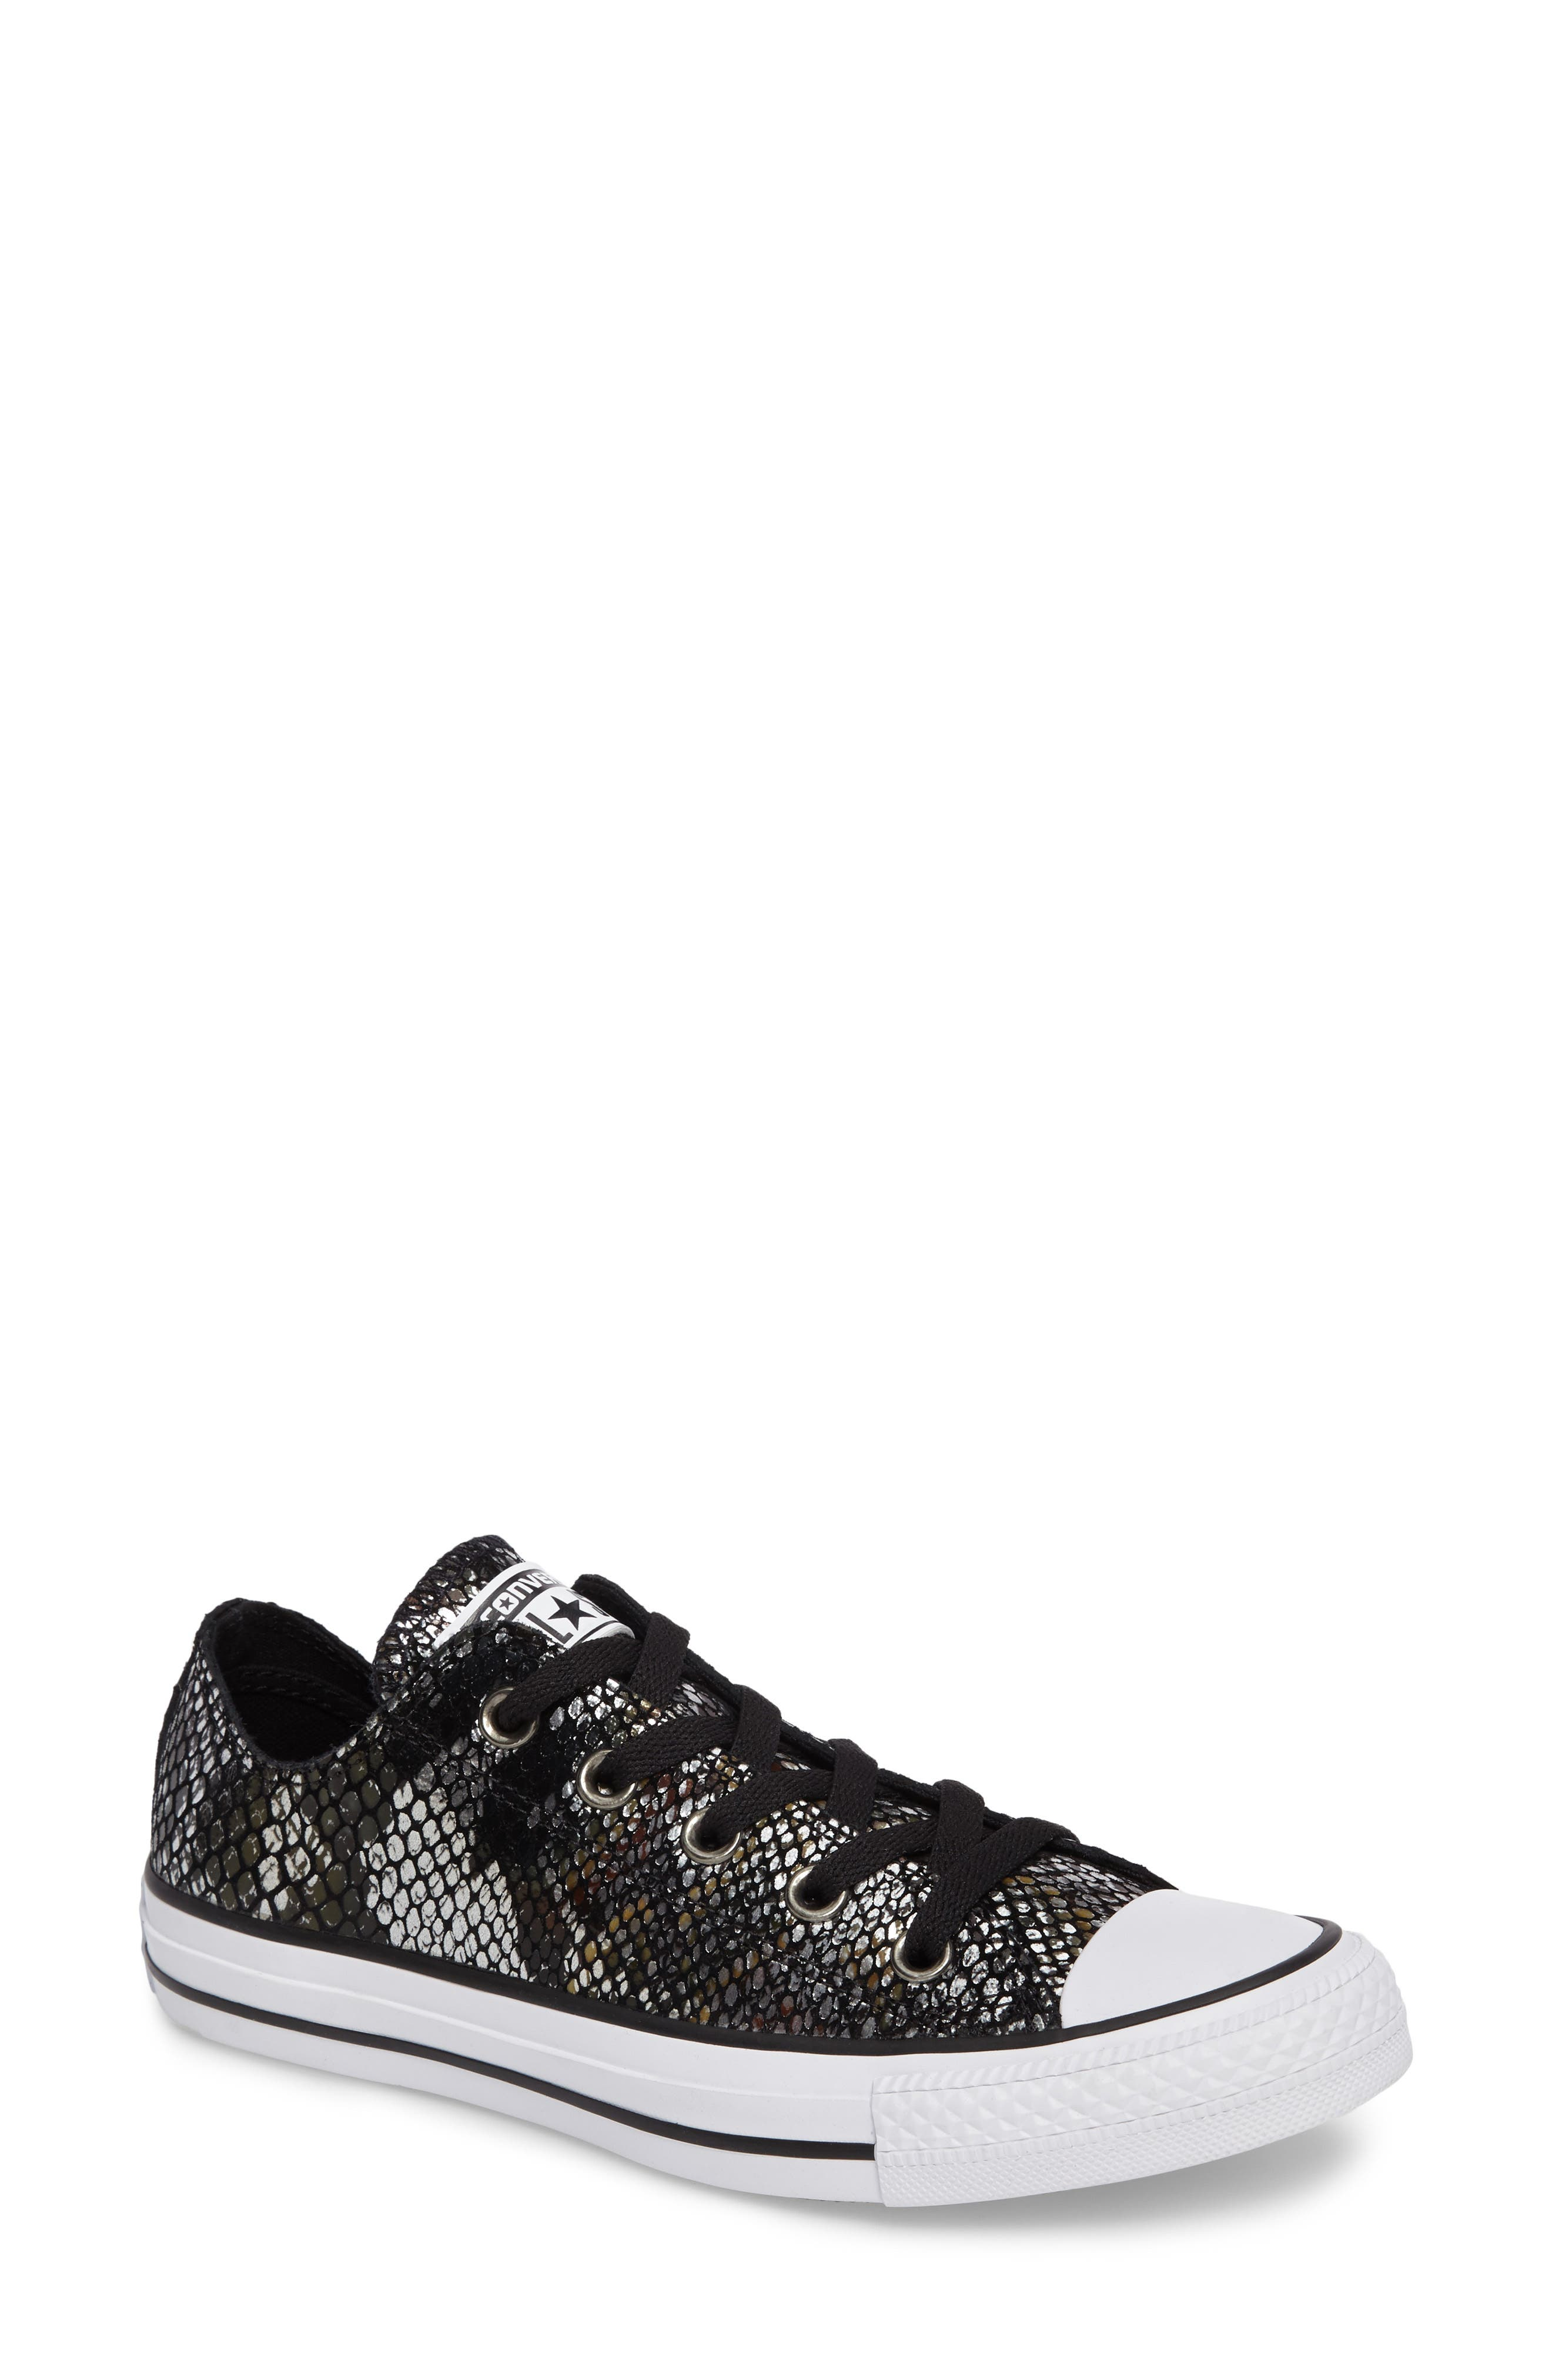 Alternate Image 1 Selected - Converse Chuck Taylor® All Star® Ox Leather Sneaker (Women)